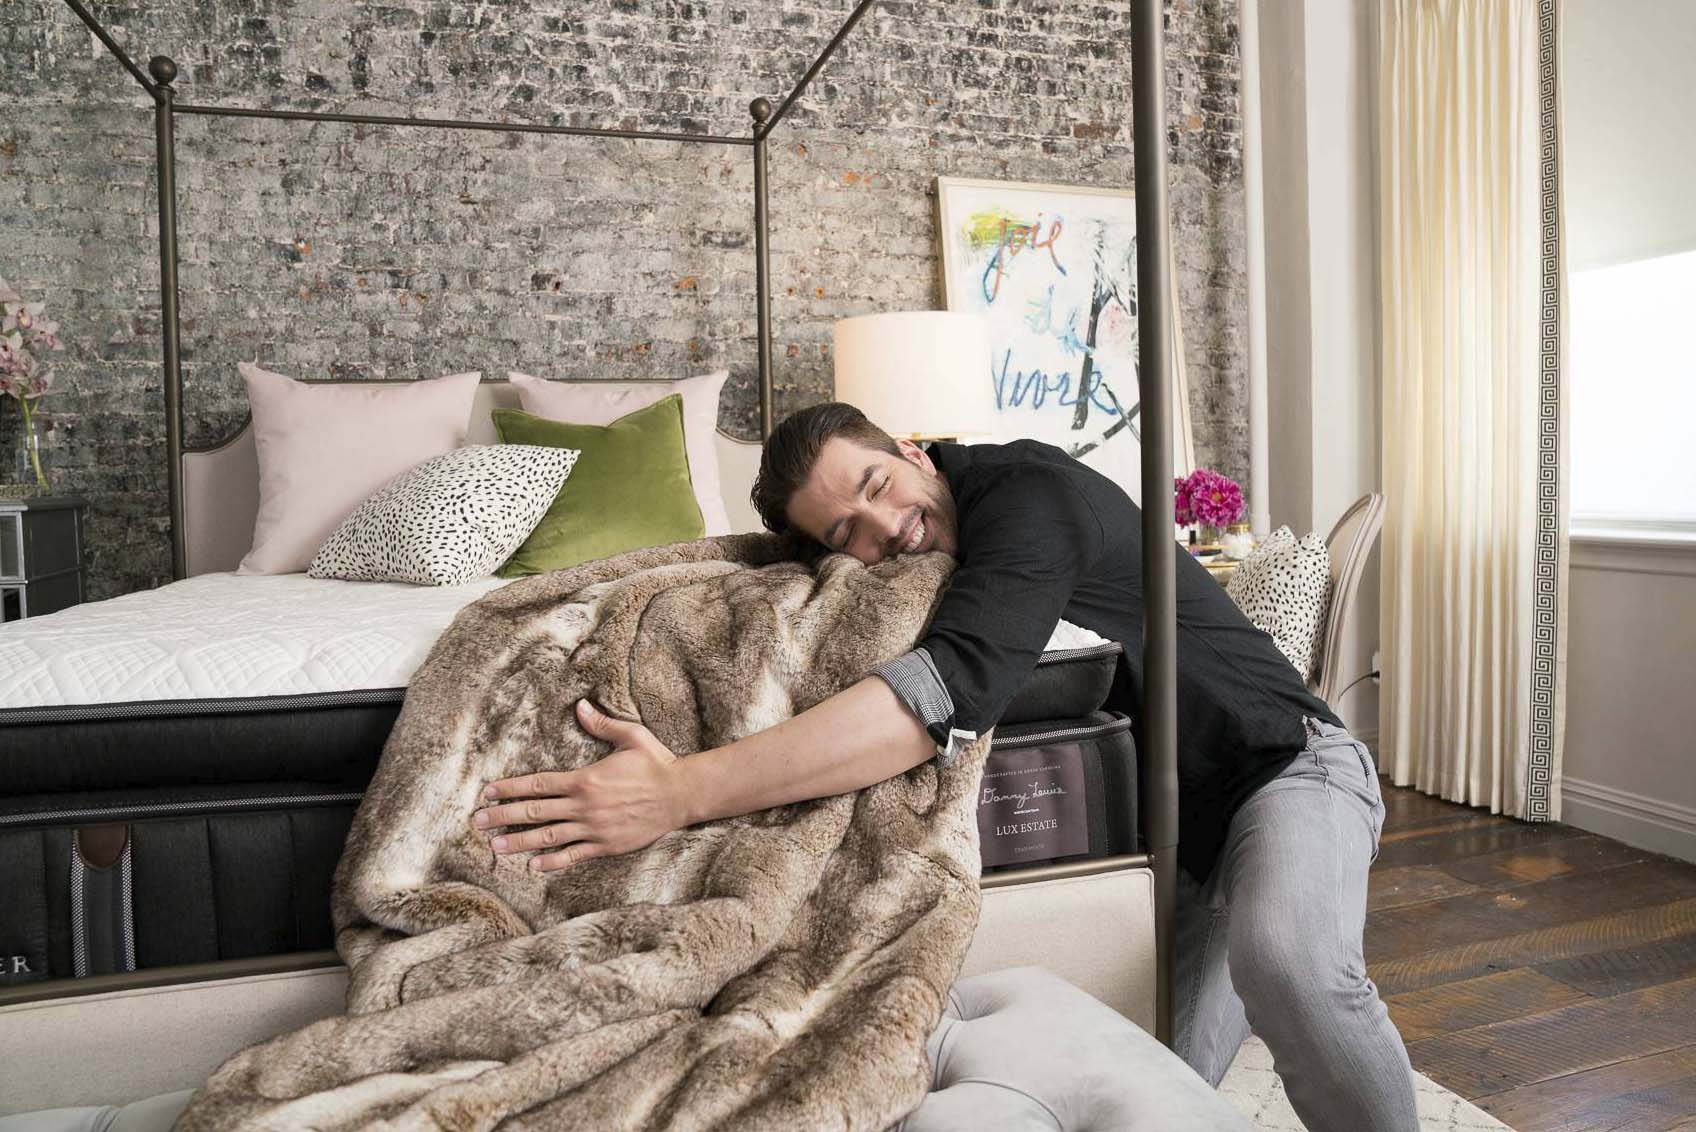 Jonathan Scott Shows It's Hard To Get Up From The Lux Estate In The Edgy Glam Room